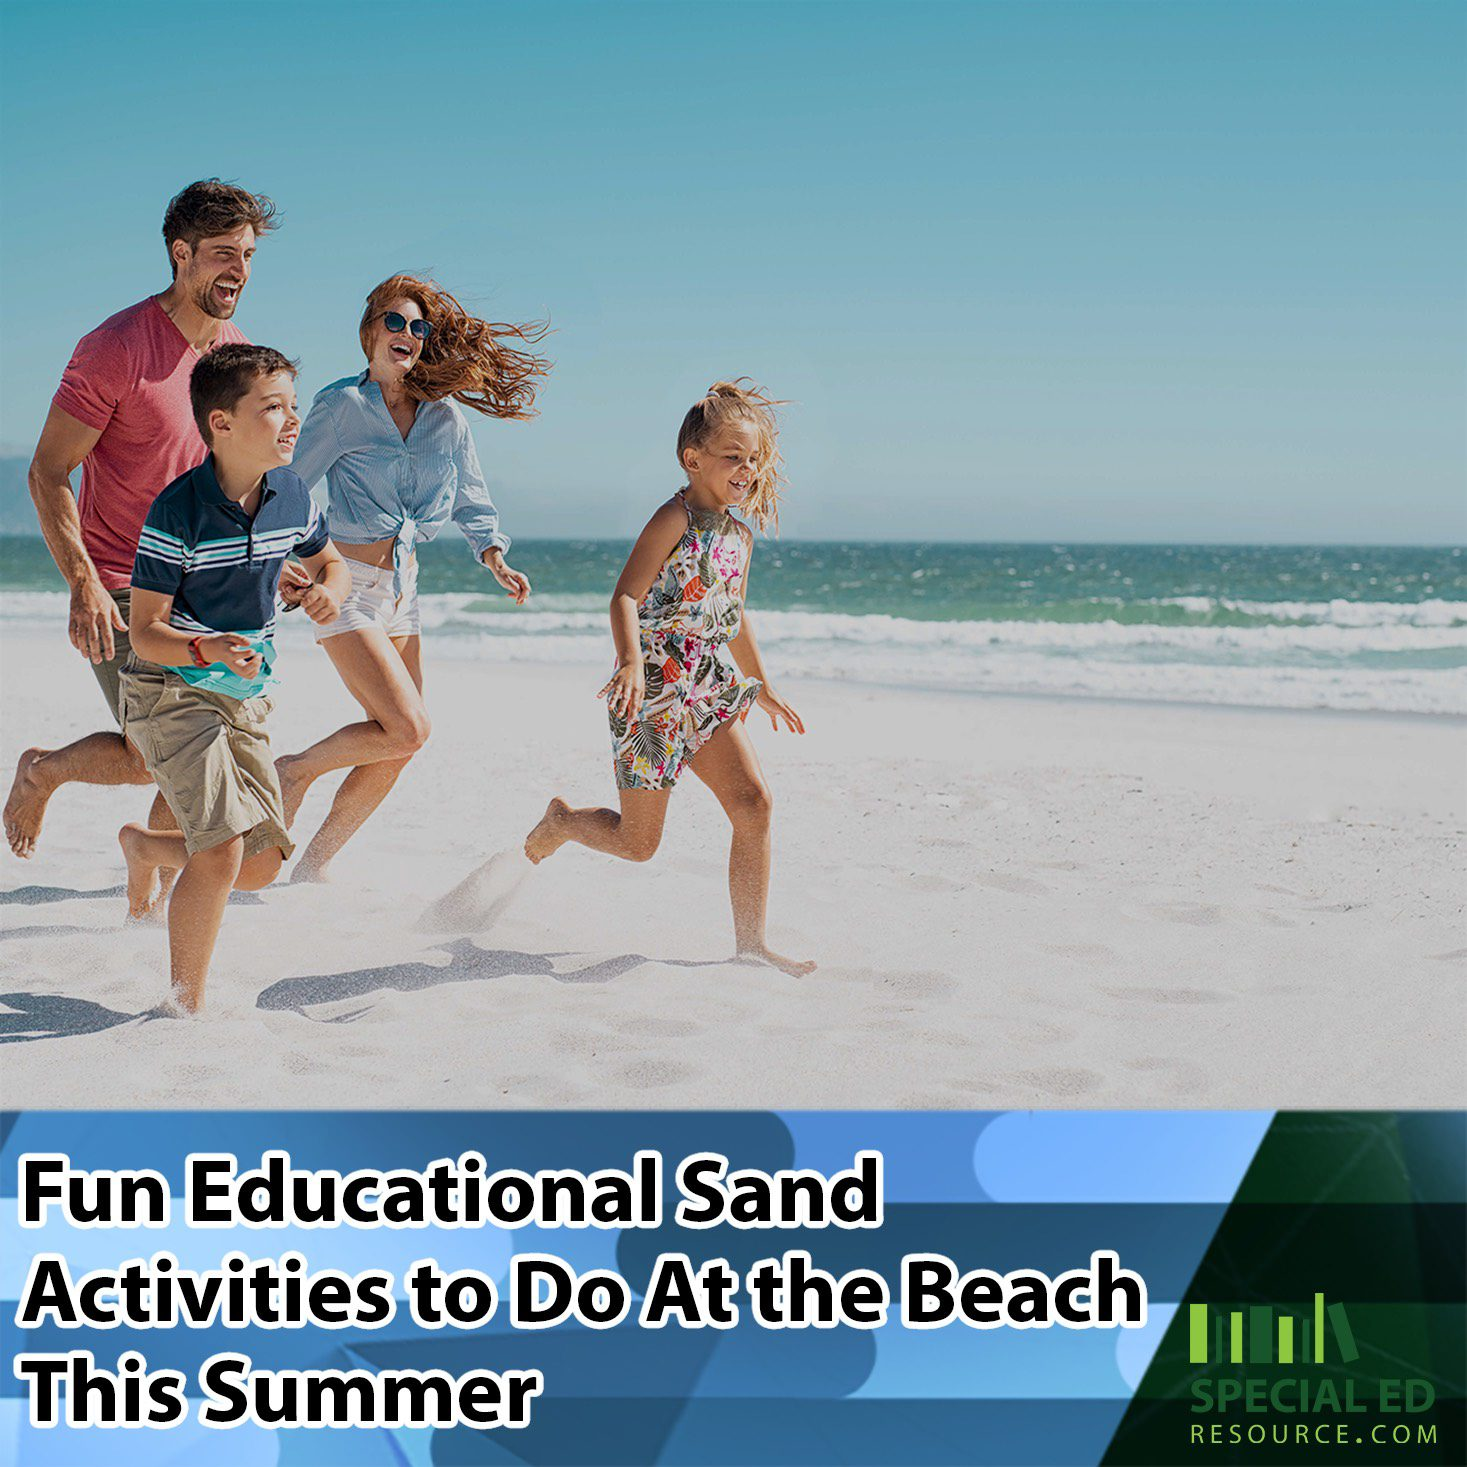 Family running on the beach looking for fun educational sand activities to do at the beach this summer.